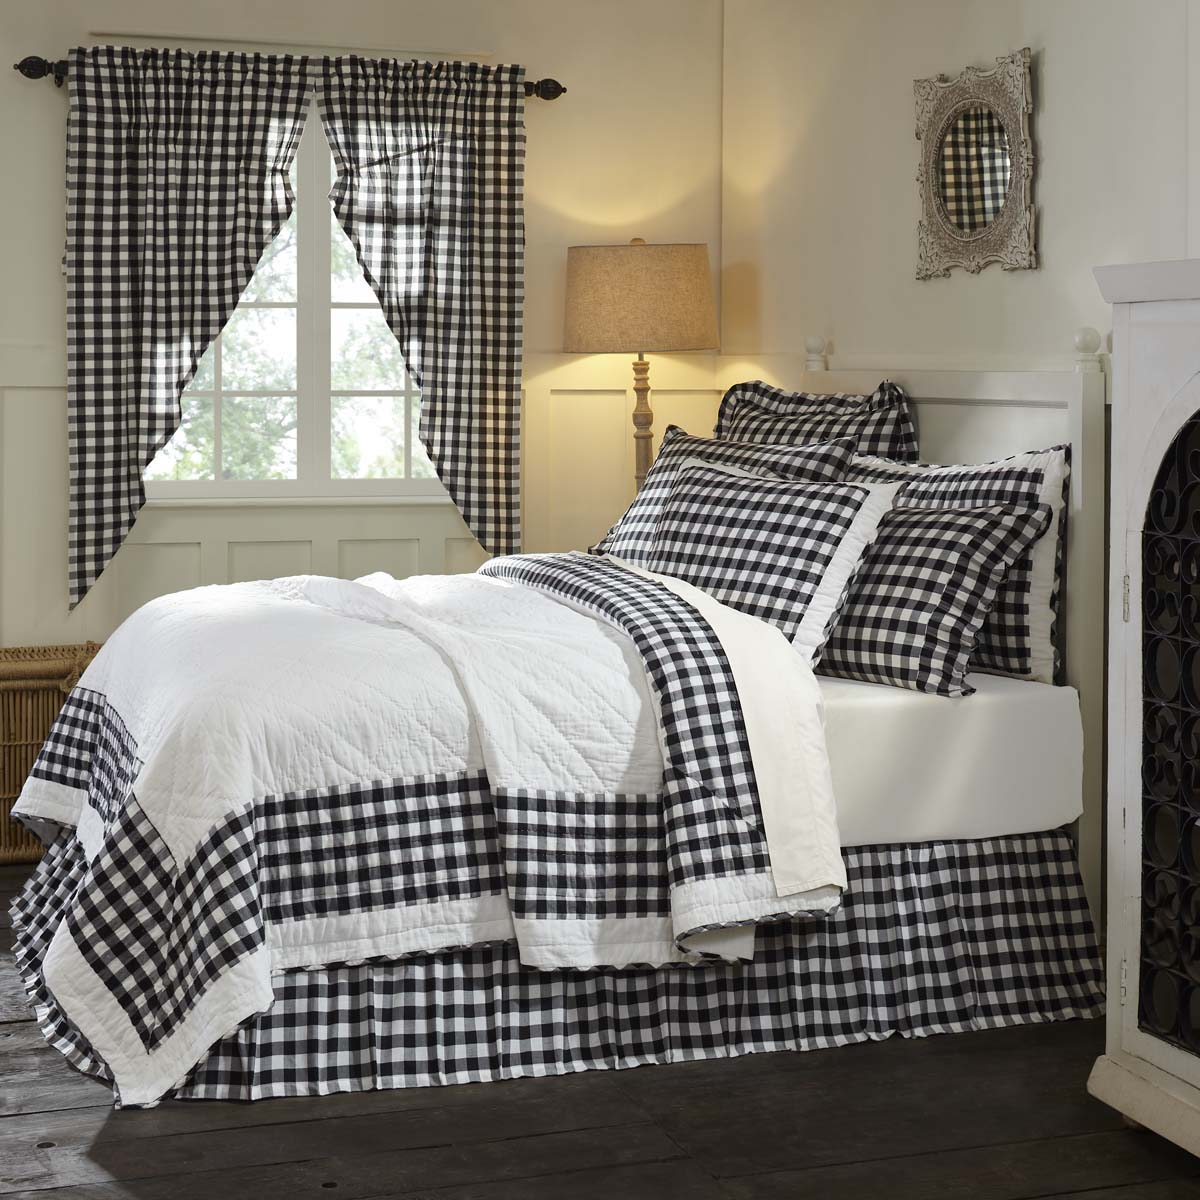 Antique White Black Farmhouse Bedding Jenna Buffalo Check Cotton Pre-Washed Buffalo Check Luxury King Quilt